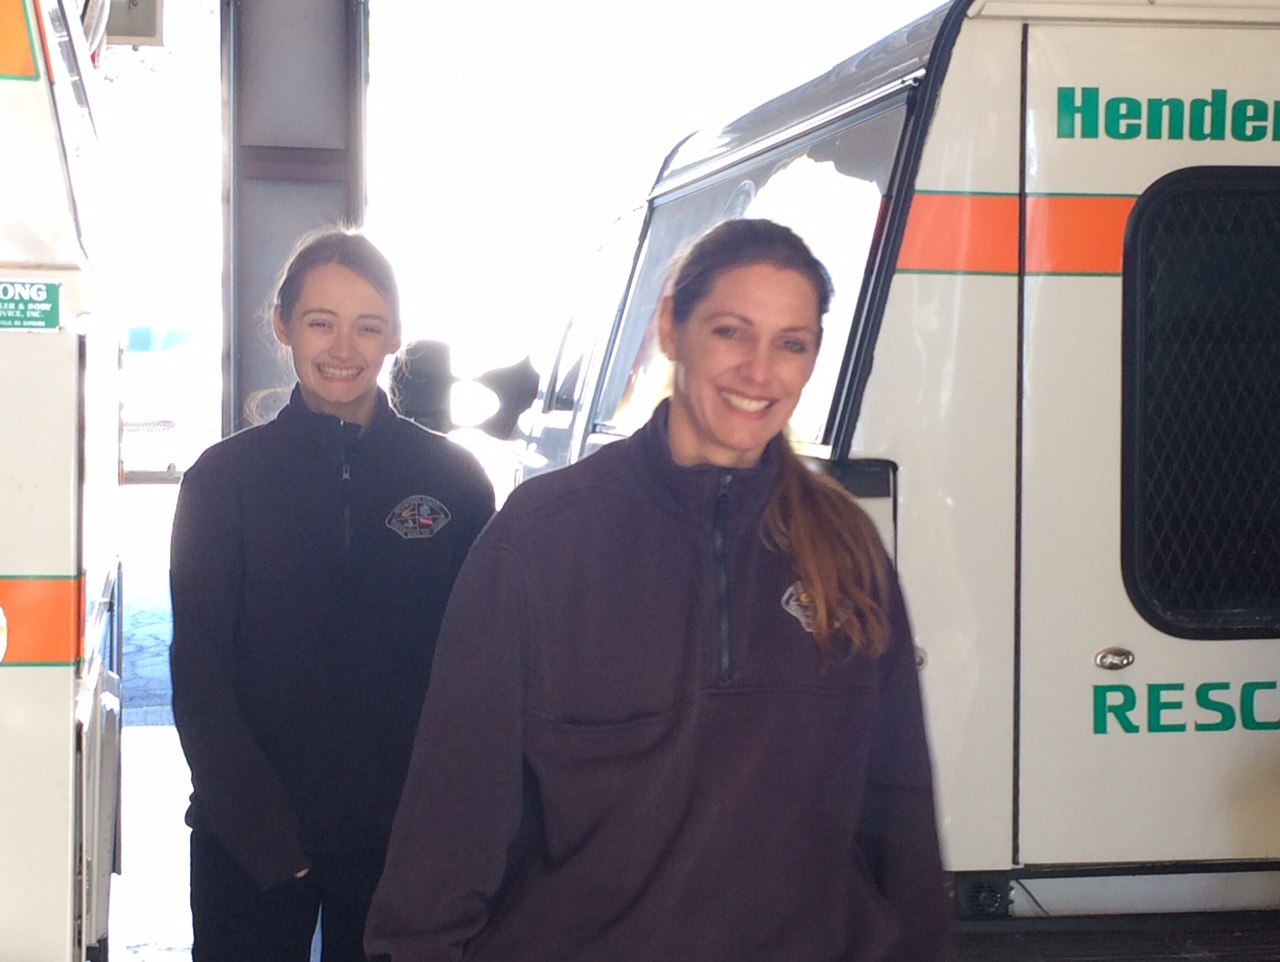 Alex Bauza and Zoe Brown are Henderson County Rescue Squad's first mother-daughter duo among a group of about 90 members. (Photo Credit: WLOS Staff).